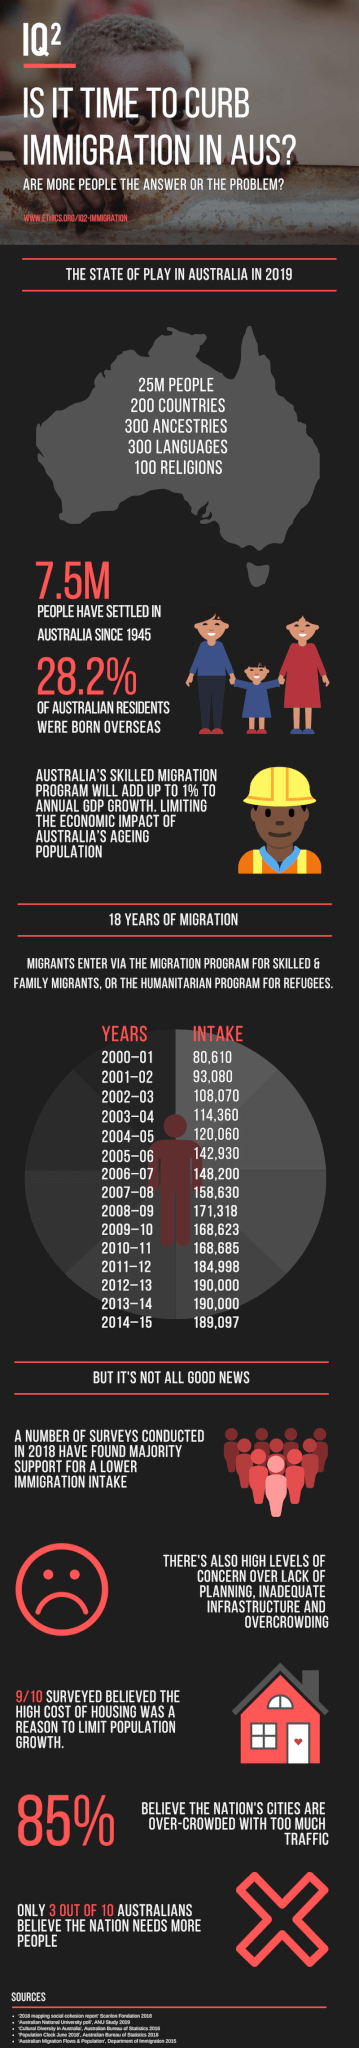 Immigration Infographic - 2